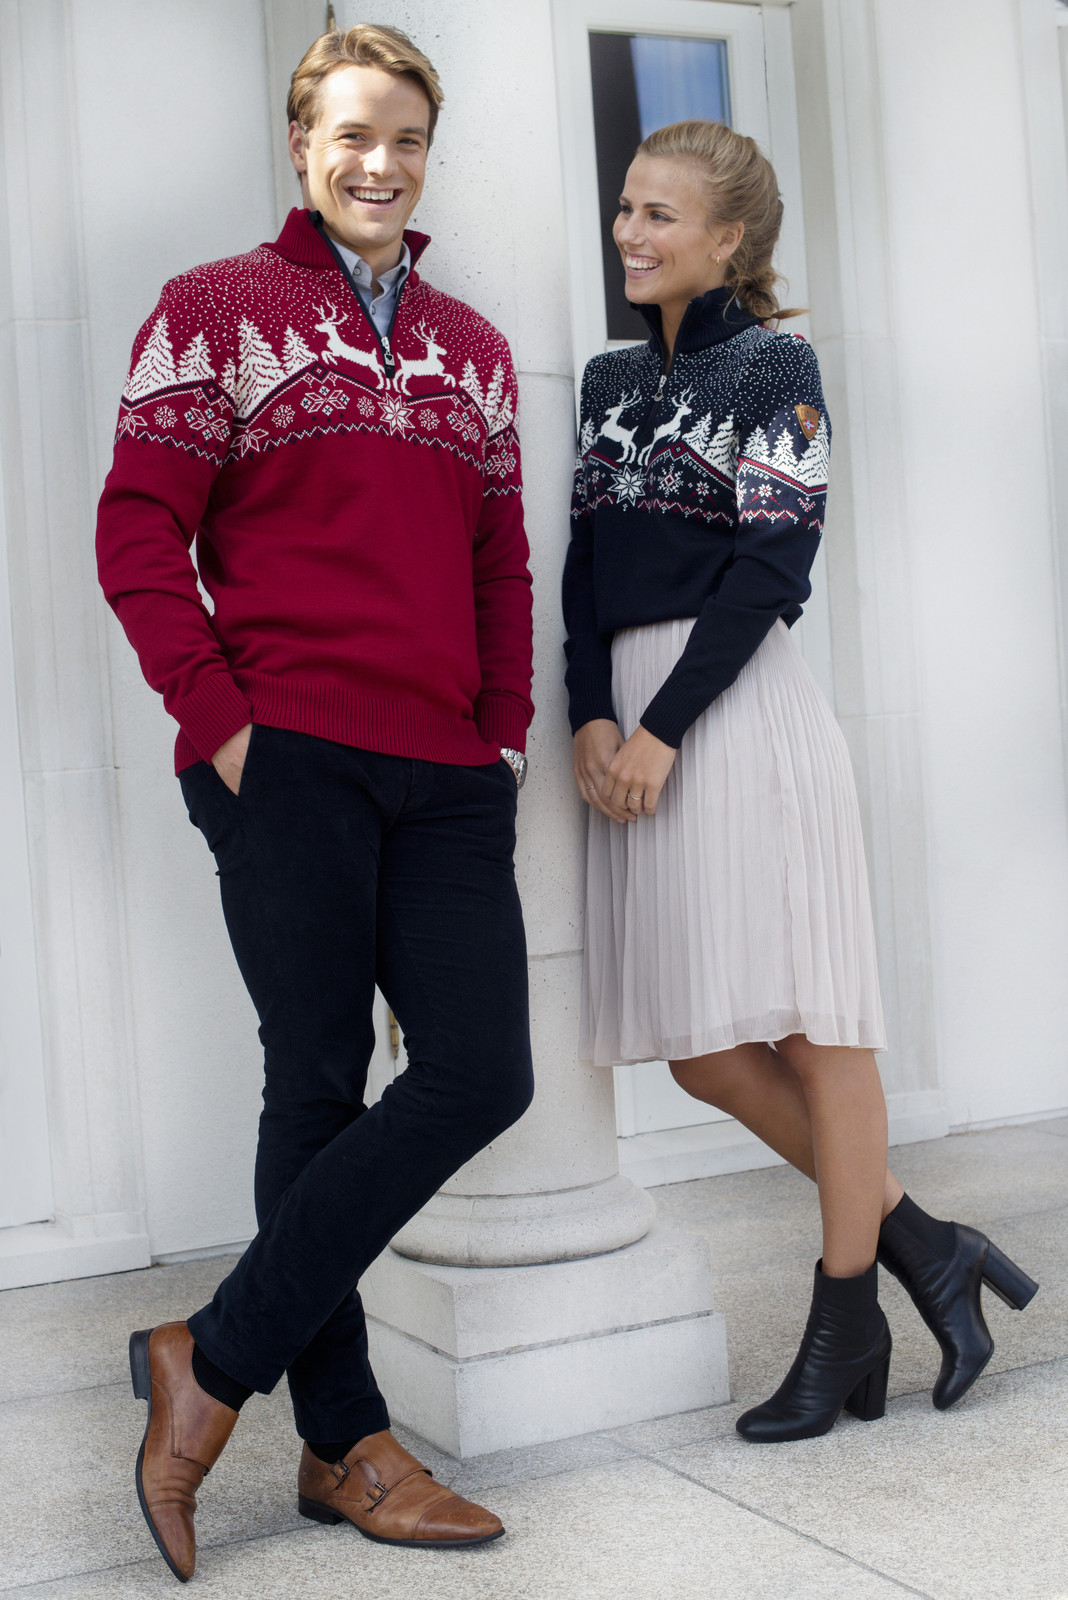 Couple wearing Dale of Norway Dale Christmas Sweaters 93921-C and 93931-B